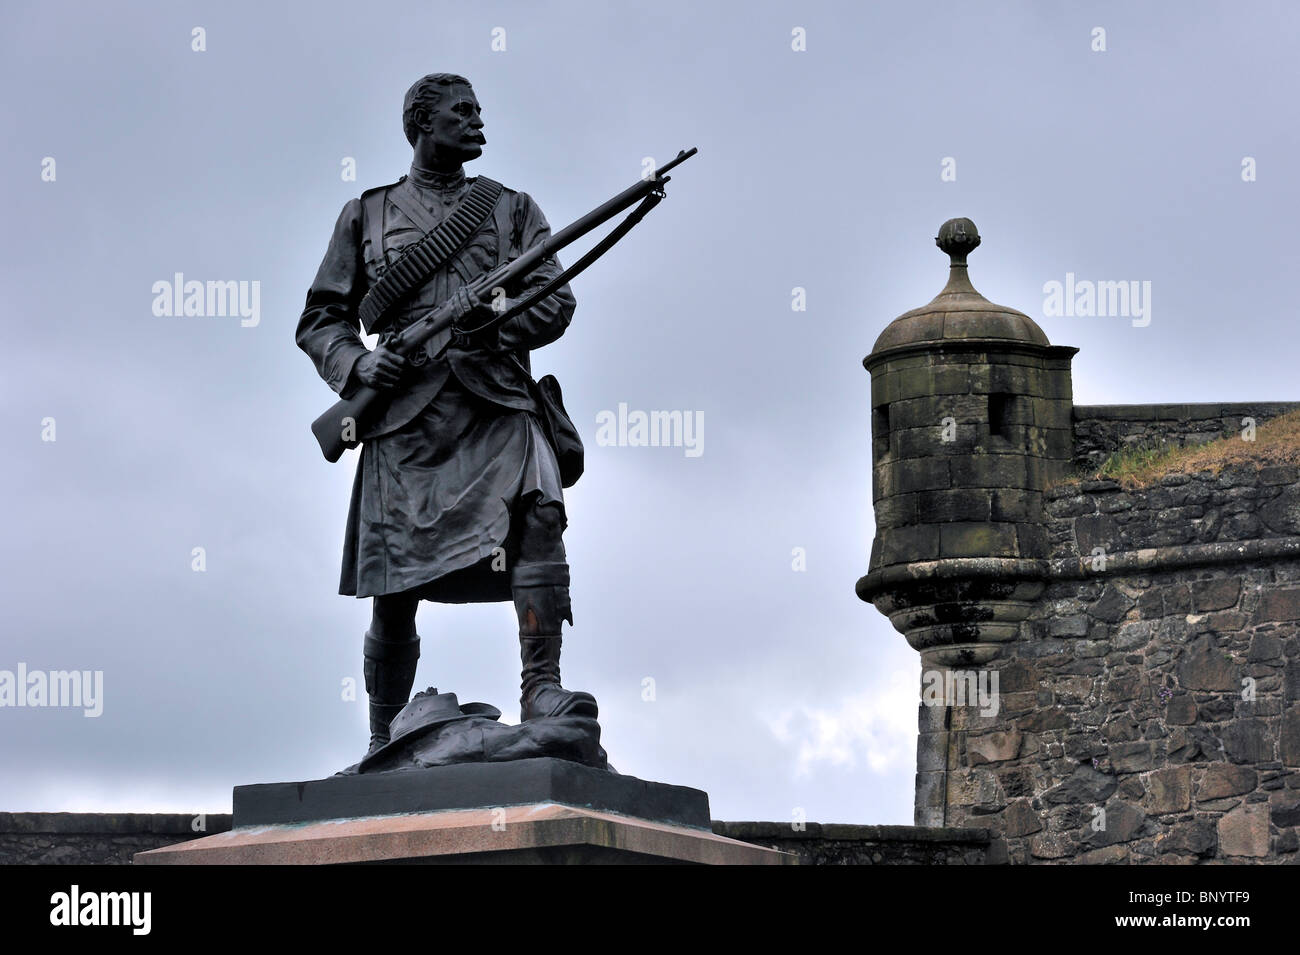 Statue of Argyll and Sutherland Highlander soldier from the Boer War at Stirling Castle, Scotland, UK - Stock Image